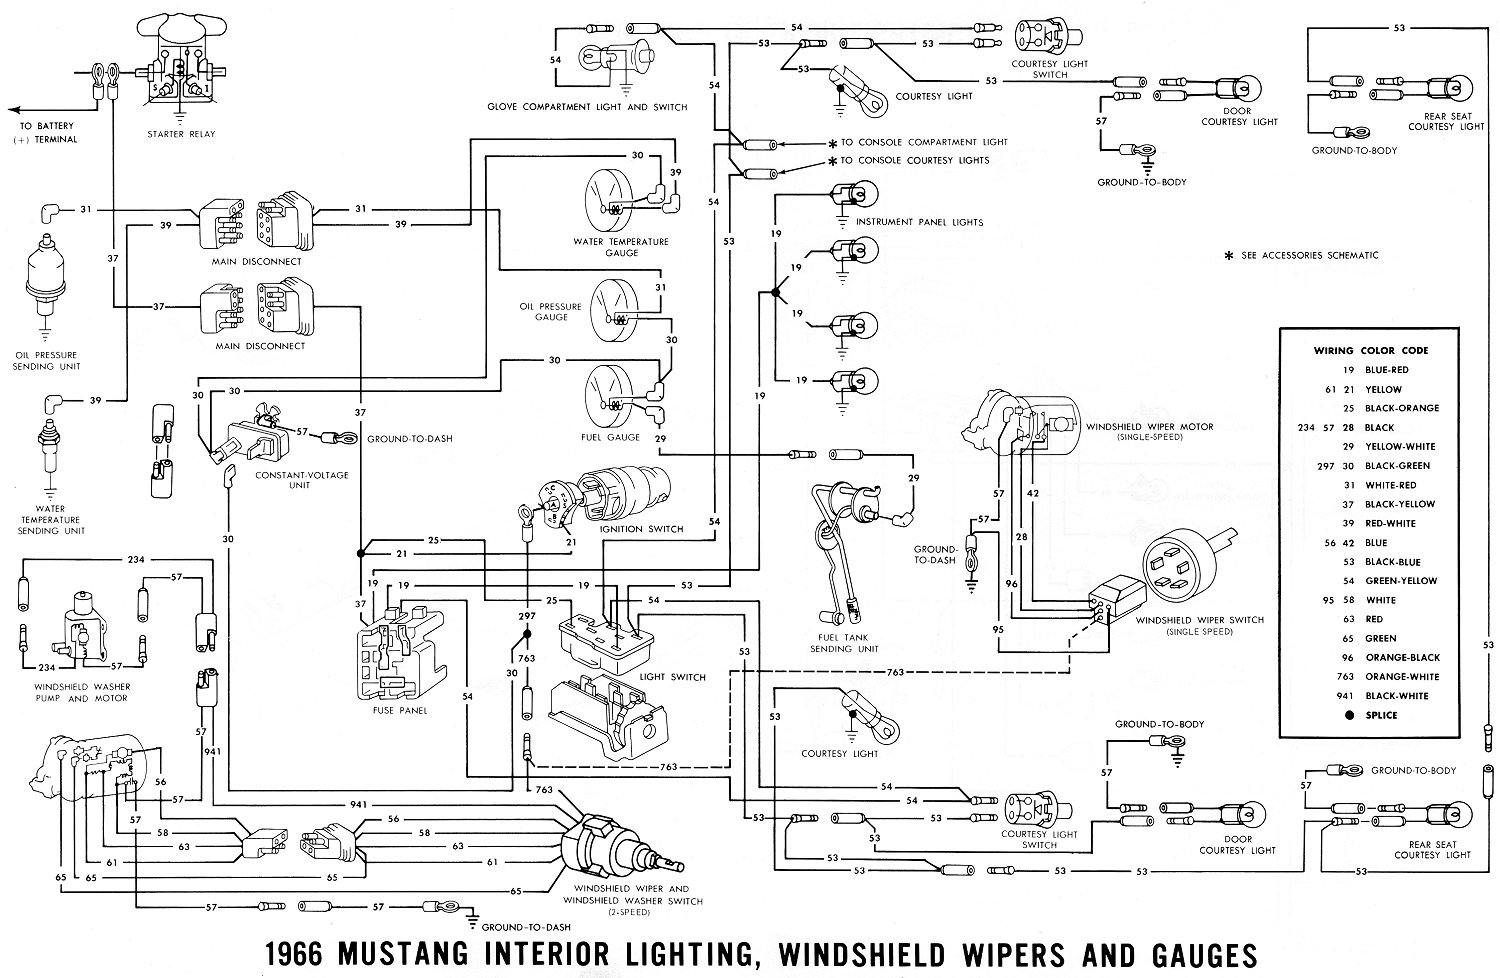 66inter1 1966 mustang wiring diagrams average joe restoration 1966 mustang voltage regulator wiring diagram at gsmx.co